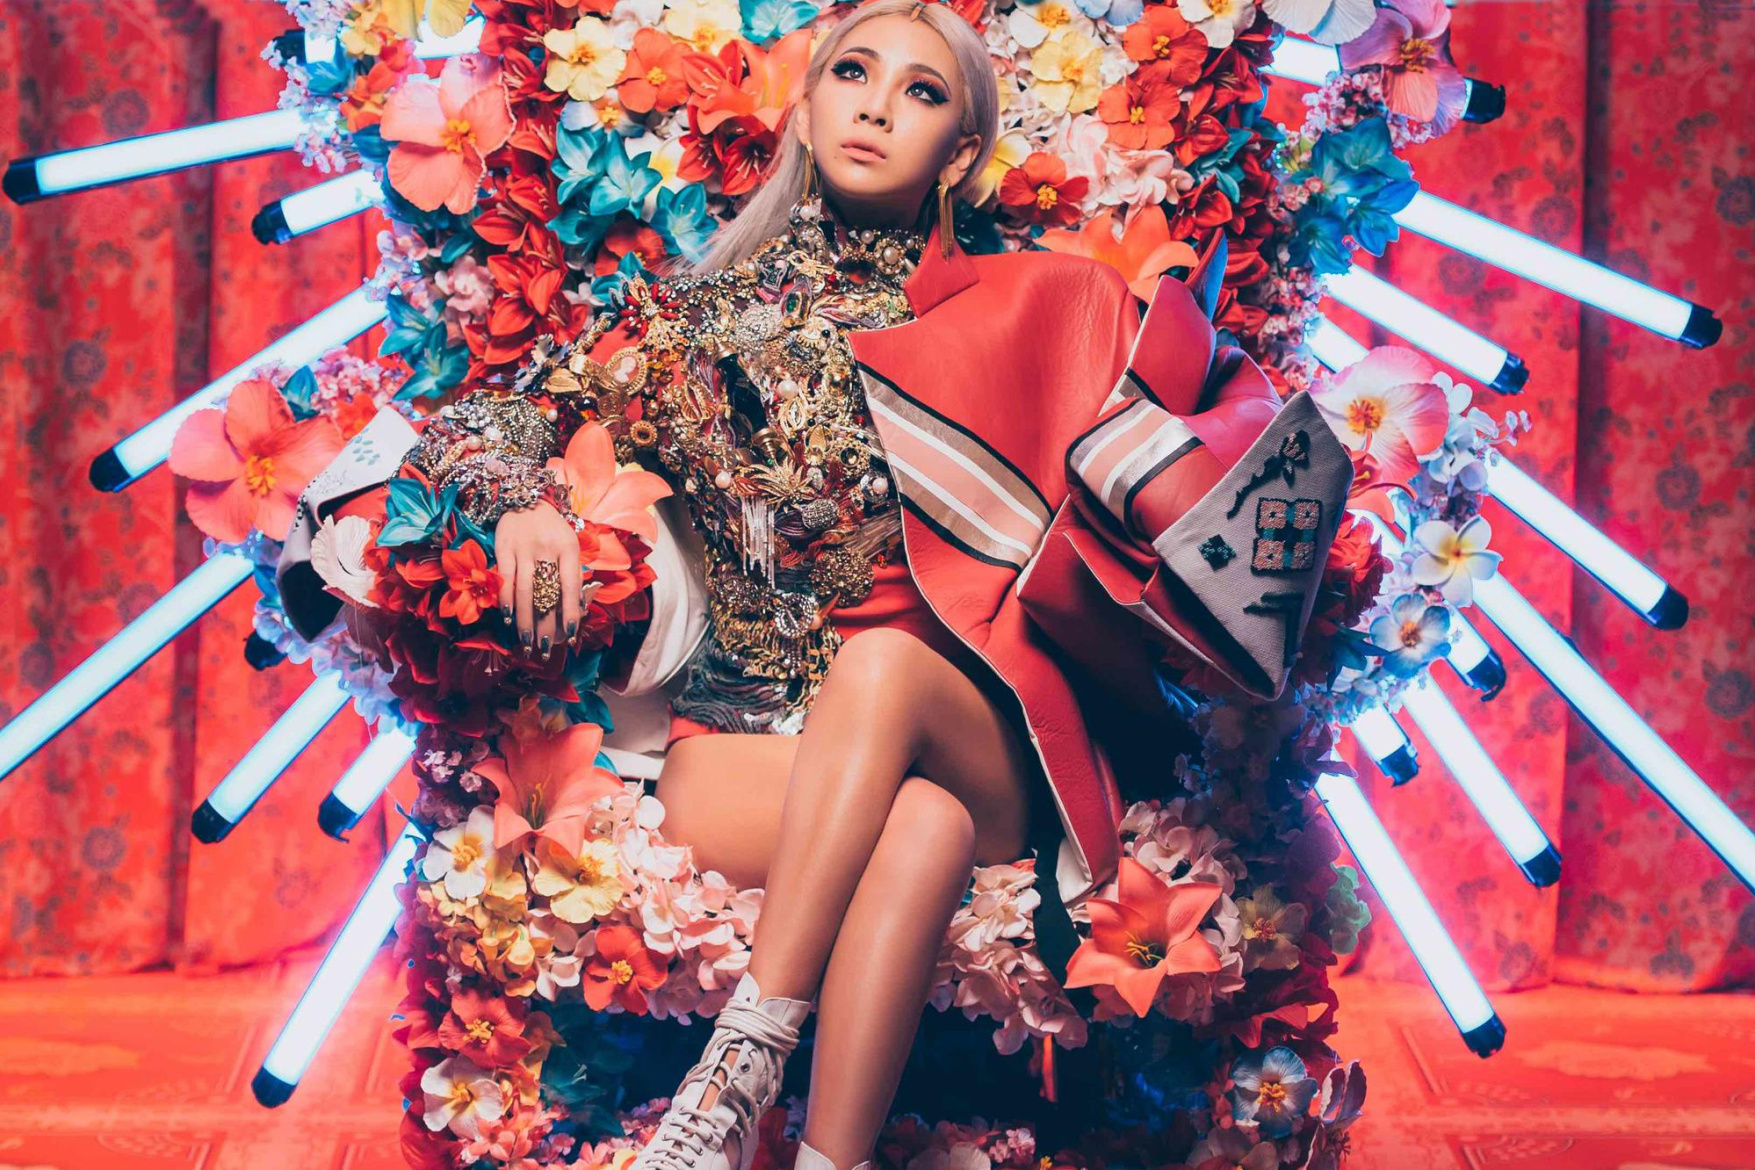 New York Iphone Wallpaper K Pop Sensation Cl Headed To Atlanta For First Solo North